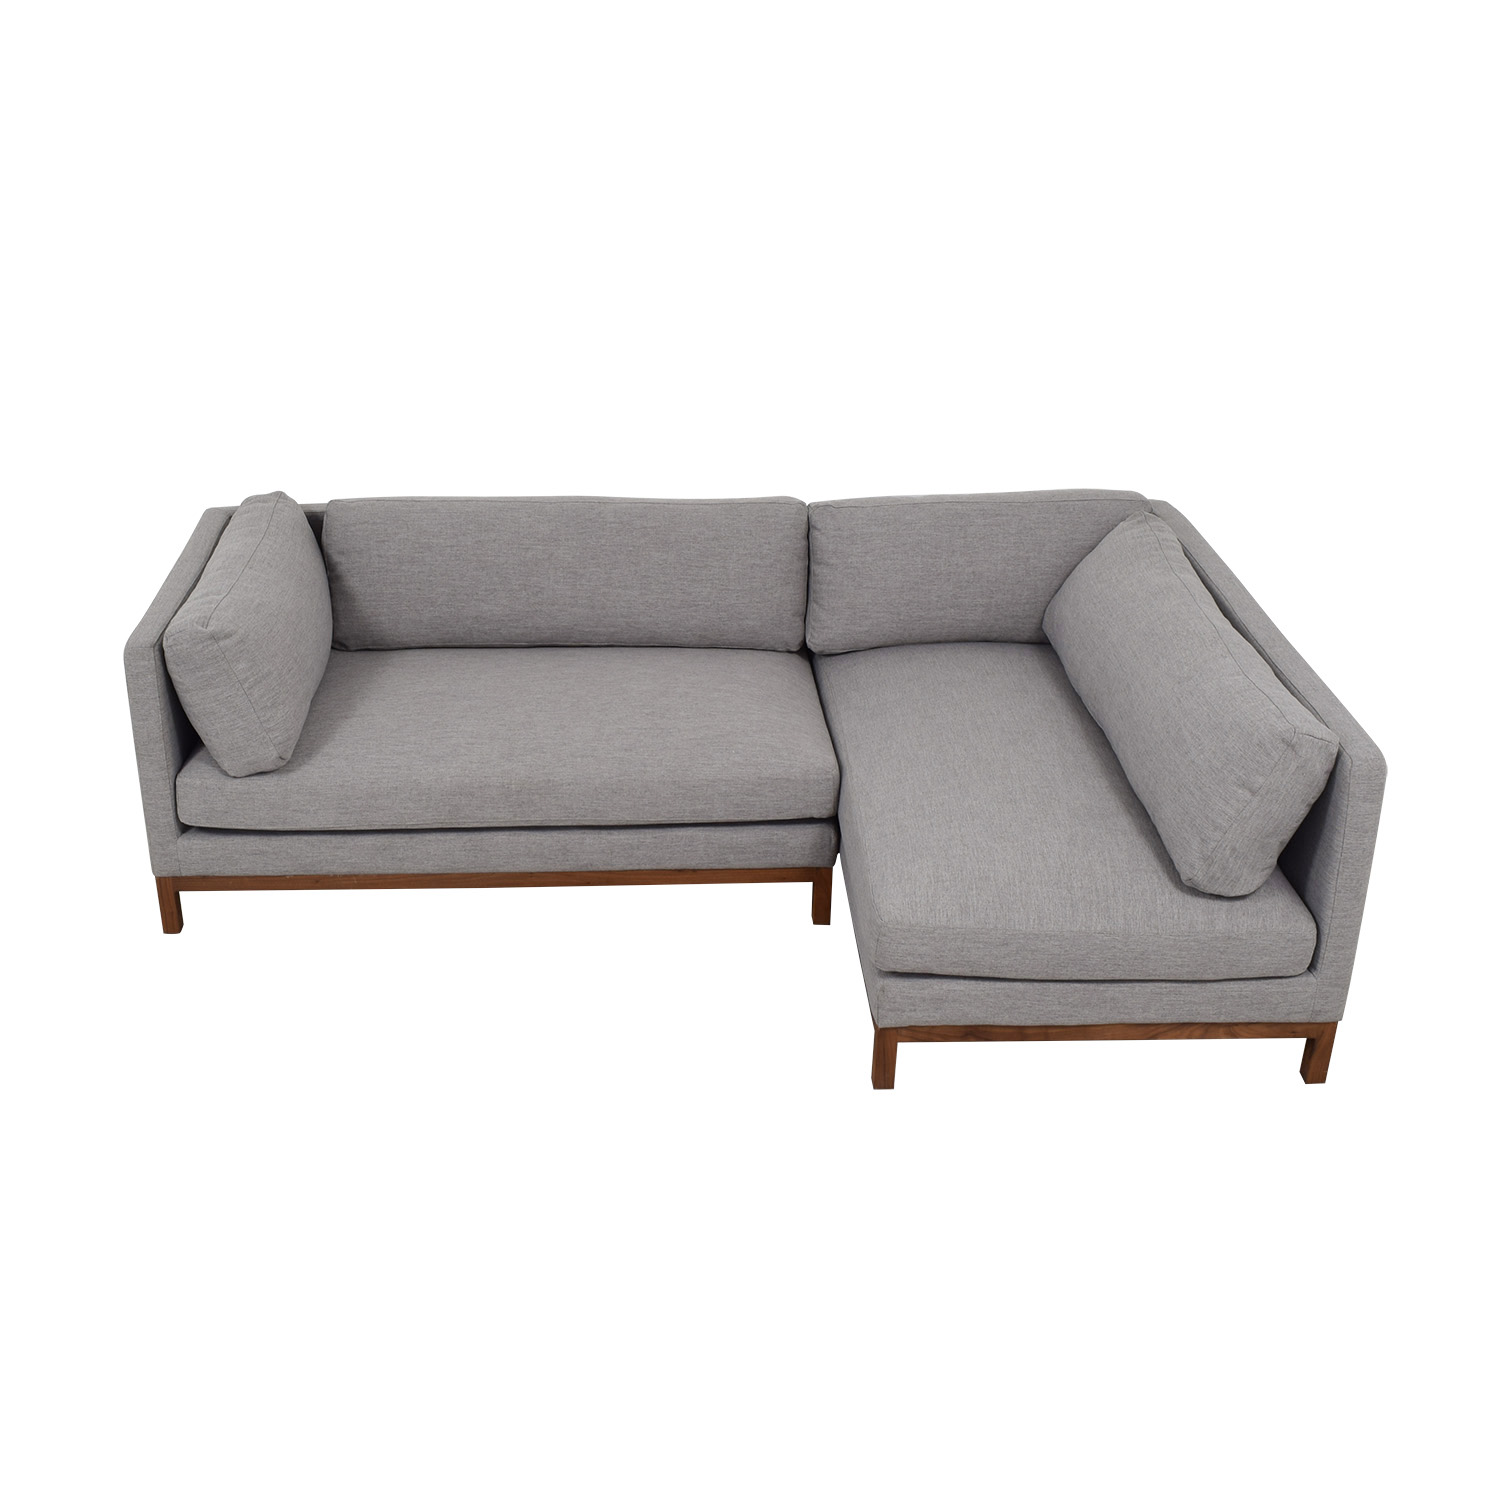 Outstanding 50 Off Grey Chaise Sectional With Wood Base Sofas Creativecarmelina Interior Chair Design Creativecarmelinacom